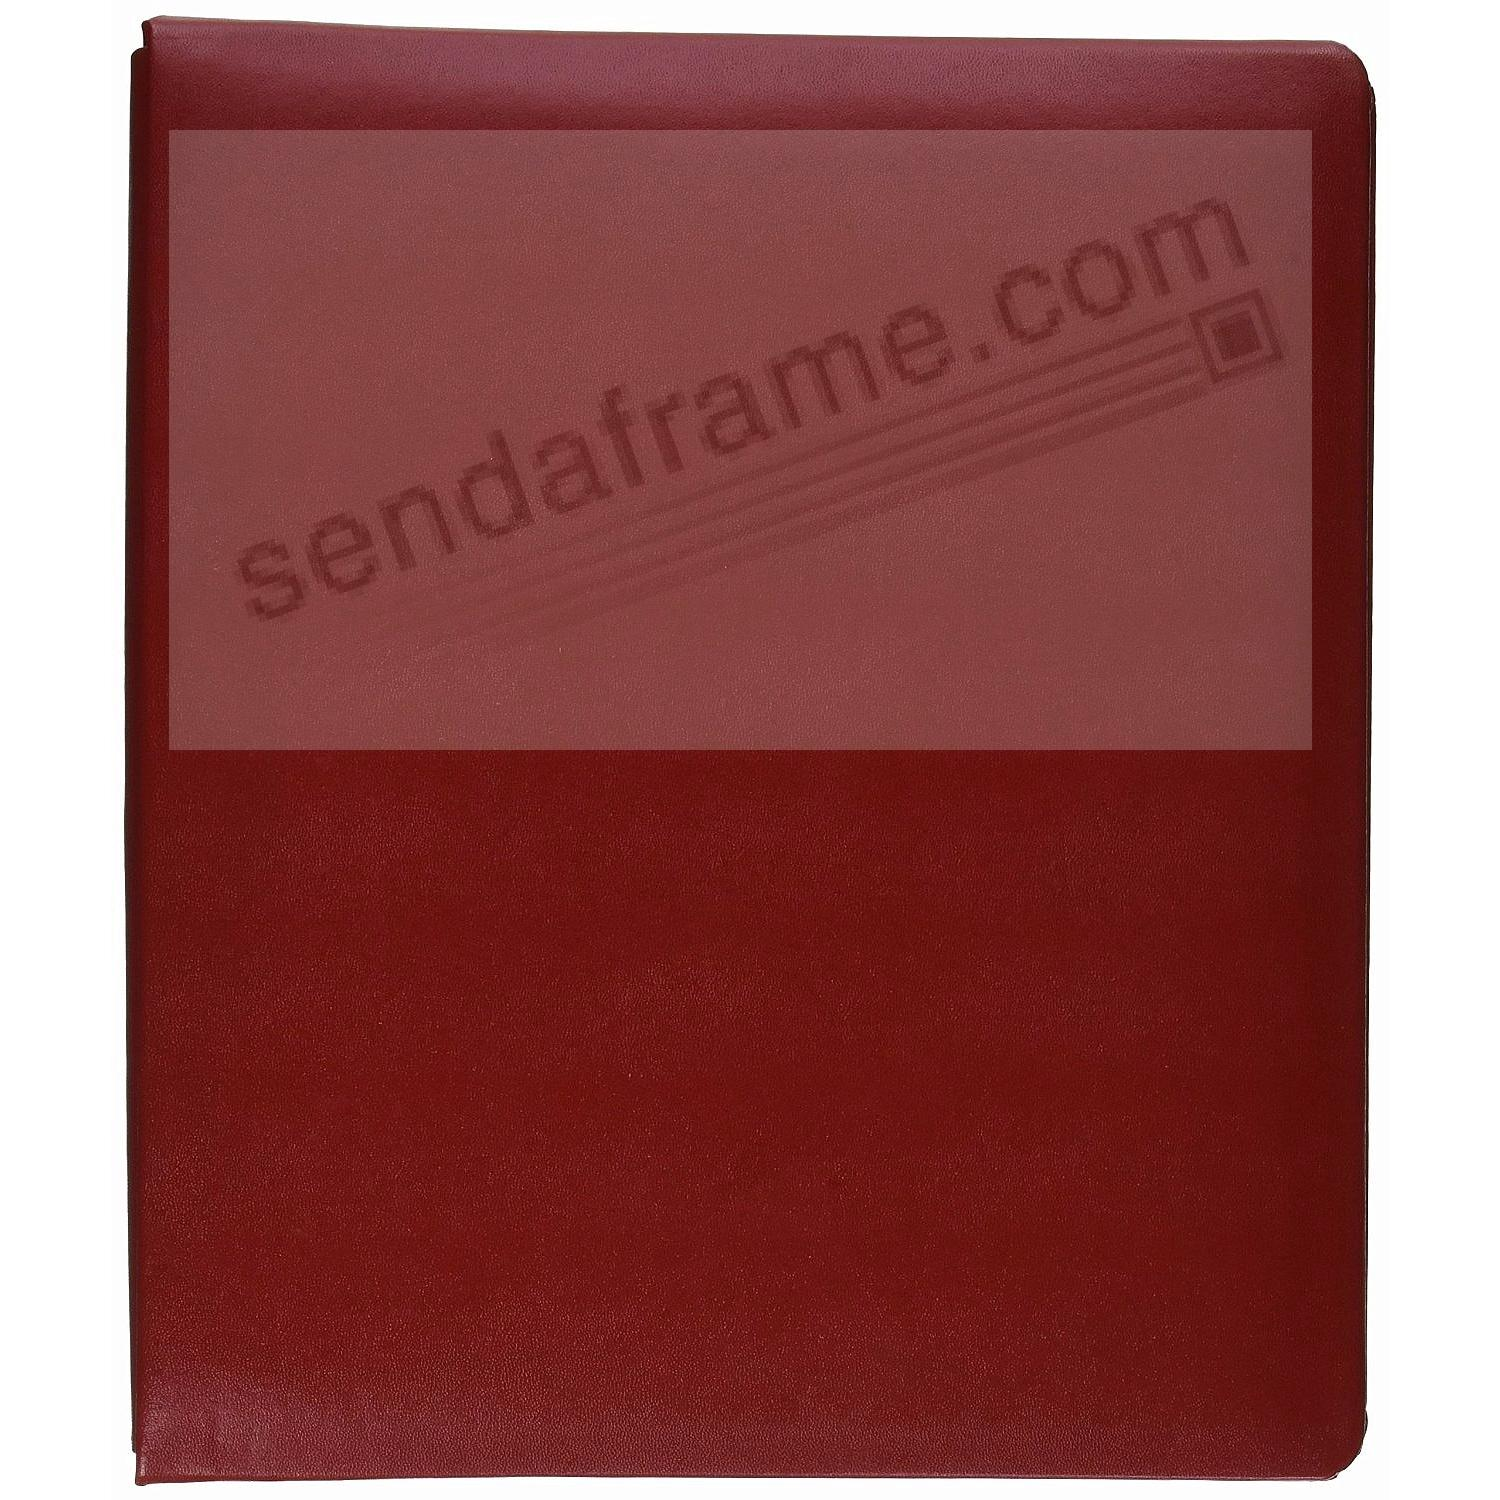 Bonded Leather 8½x11 Red MEMORY BOOK by Pioneer® - Huge Capacity!